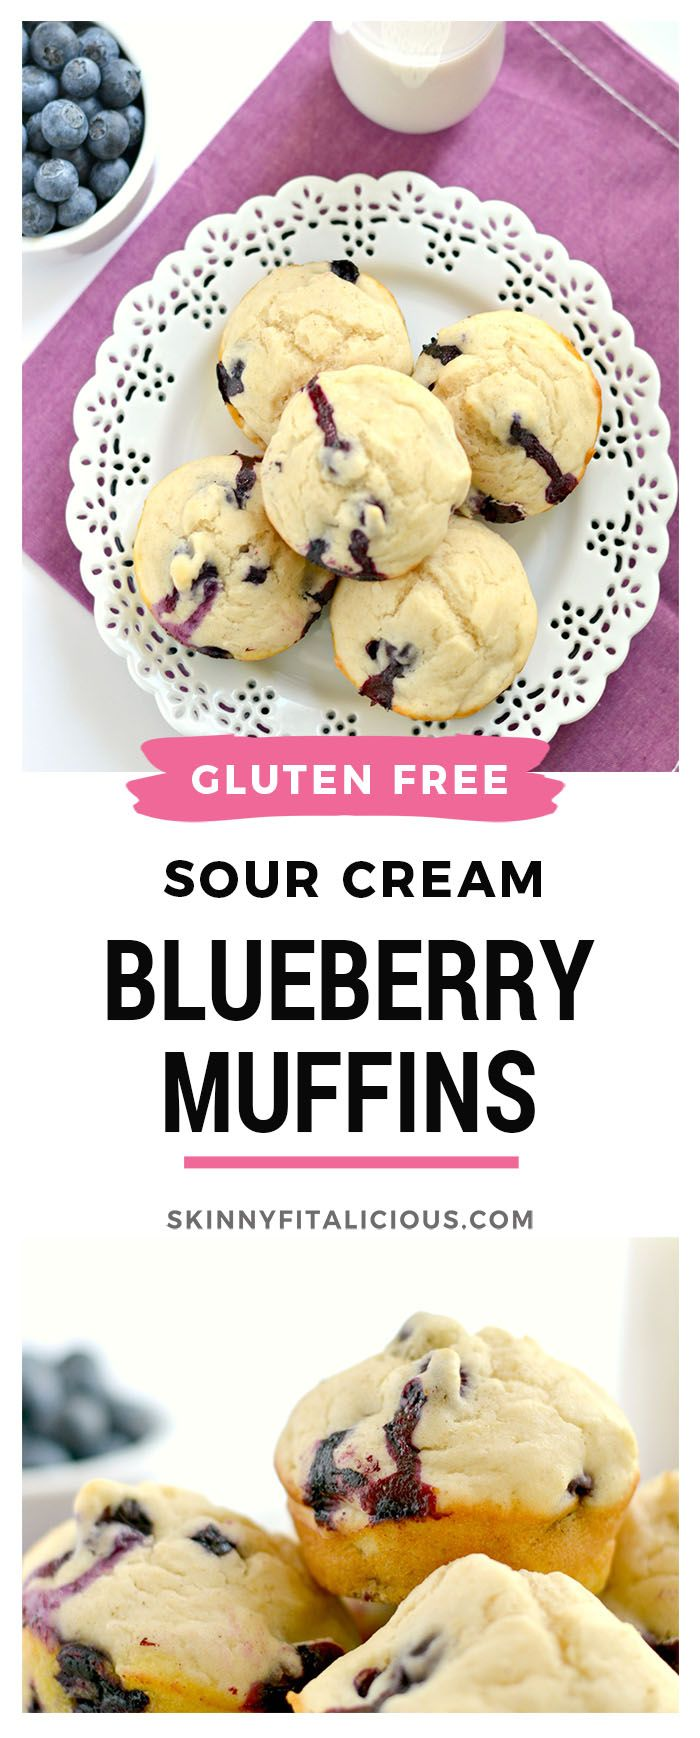 Sour Cream Blueberry Muffins Made Lighter With Sour Cream Applesauce Dairy Fre Low Calorie Blueberry Muffins Sour Cream Blueberry Muffins Sour Cream Muffins